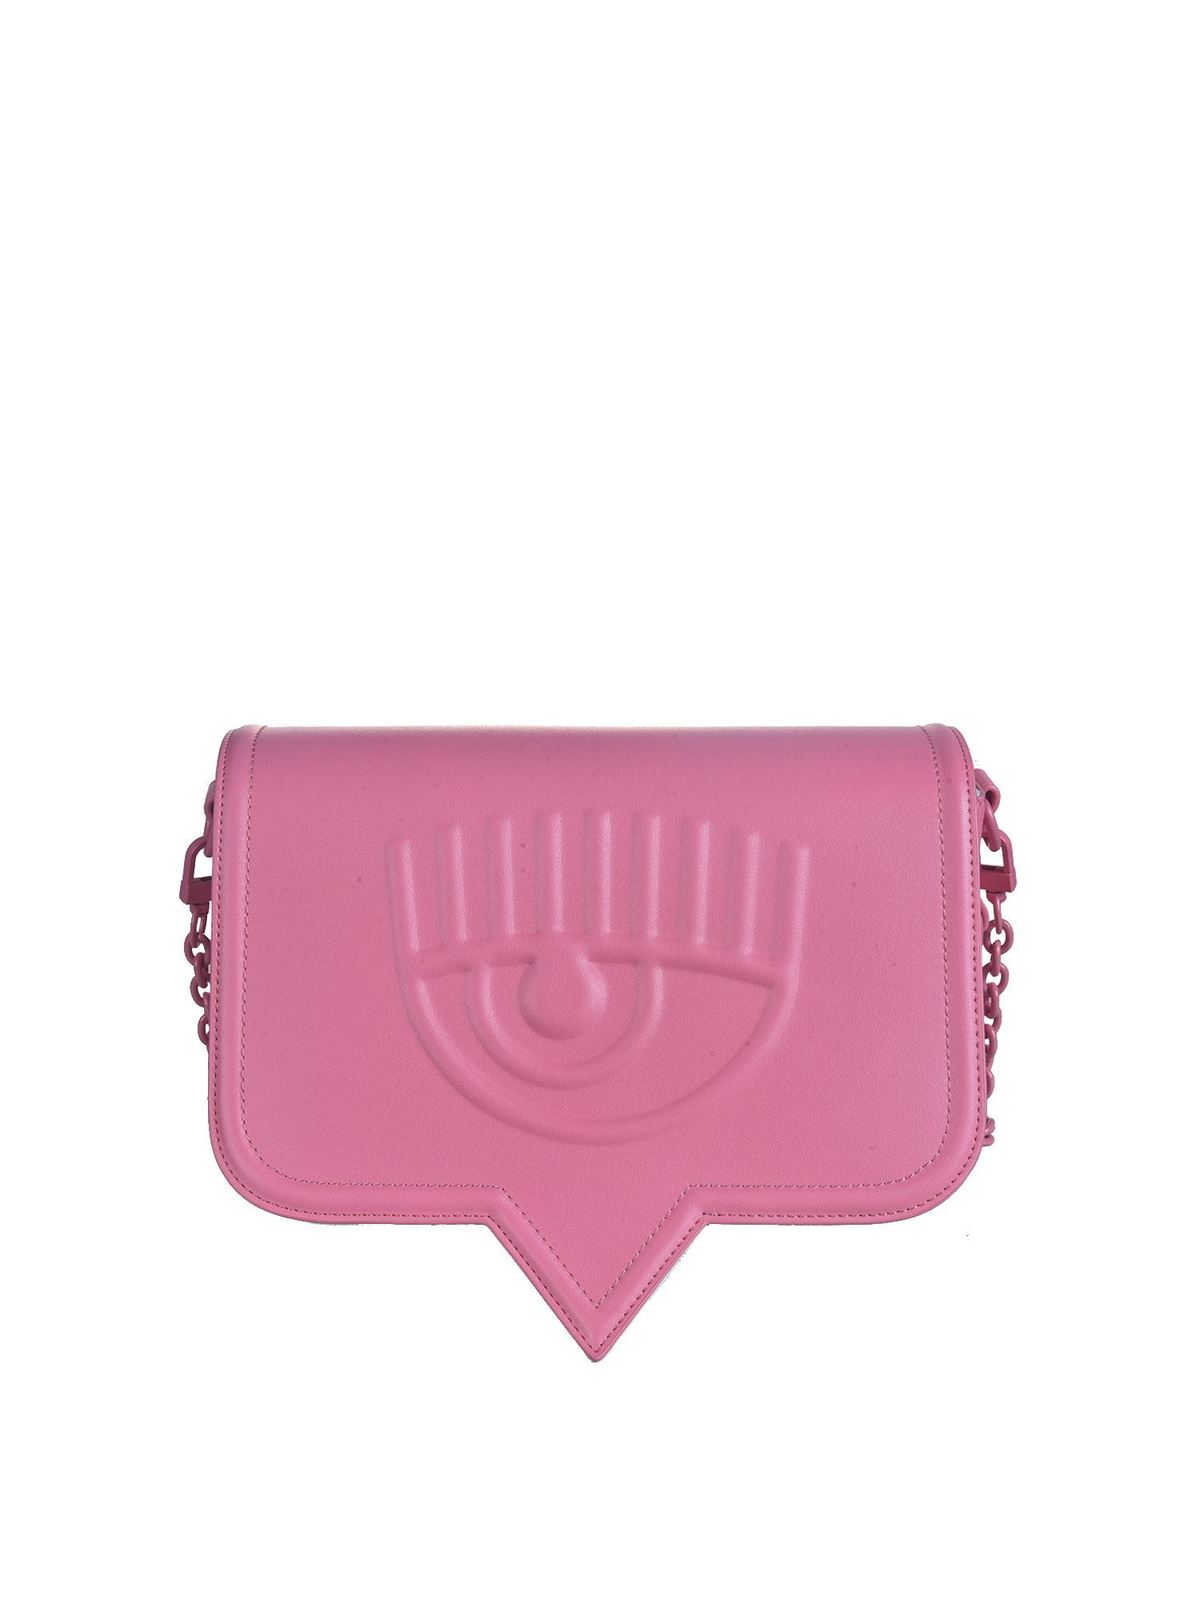 Chiara Ferragni EYELIKE BIG SHOULDER BAG IN PINK